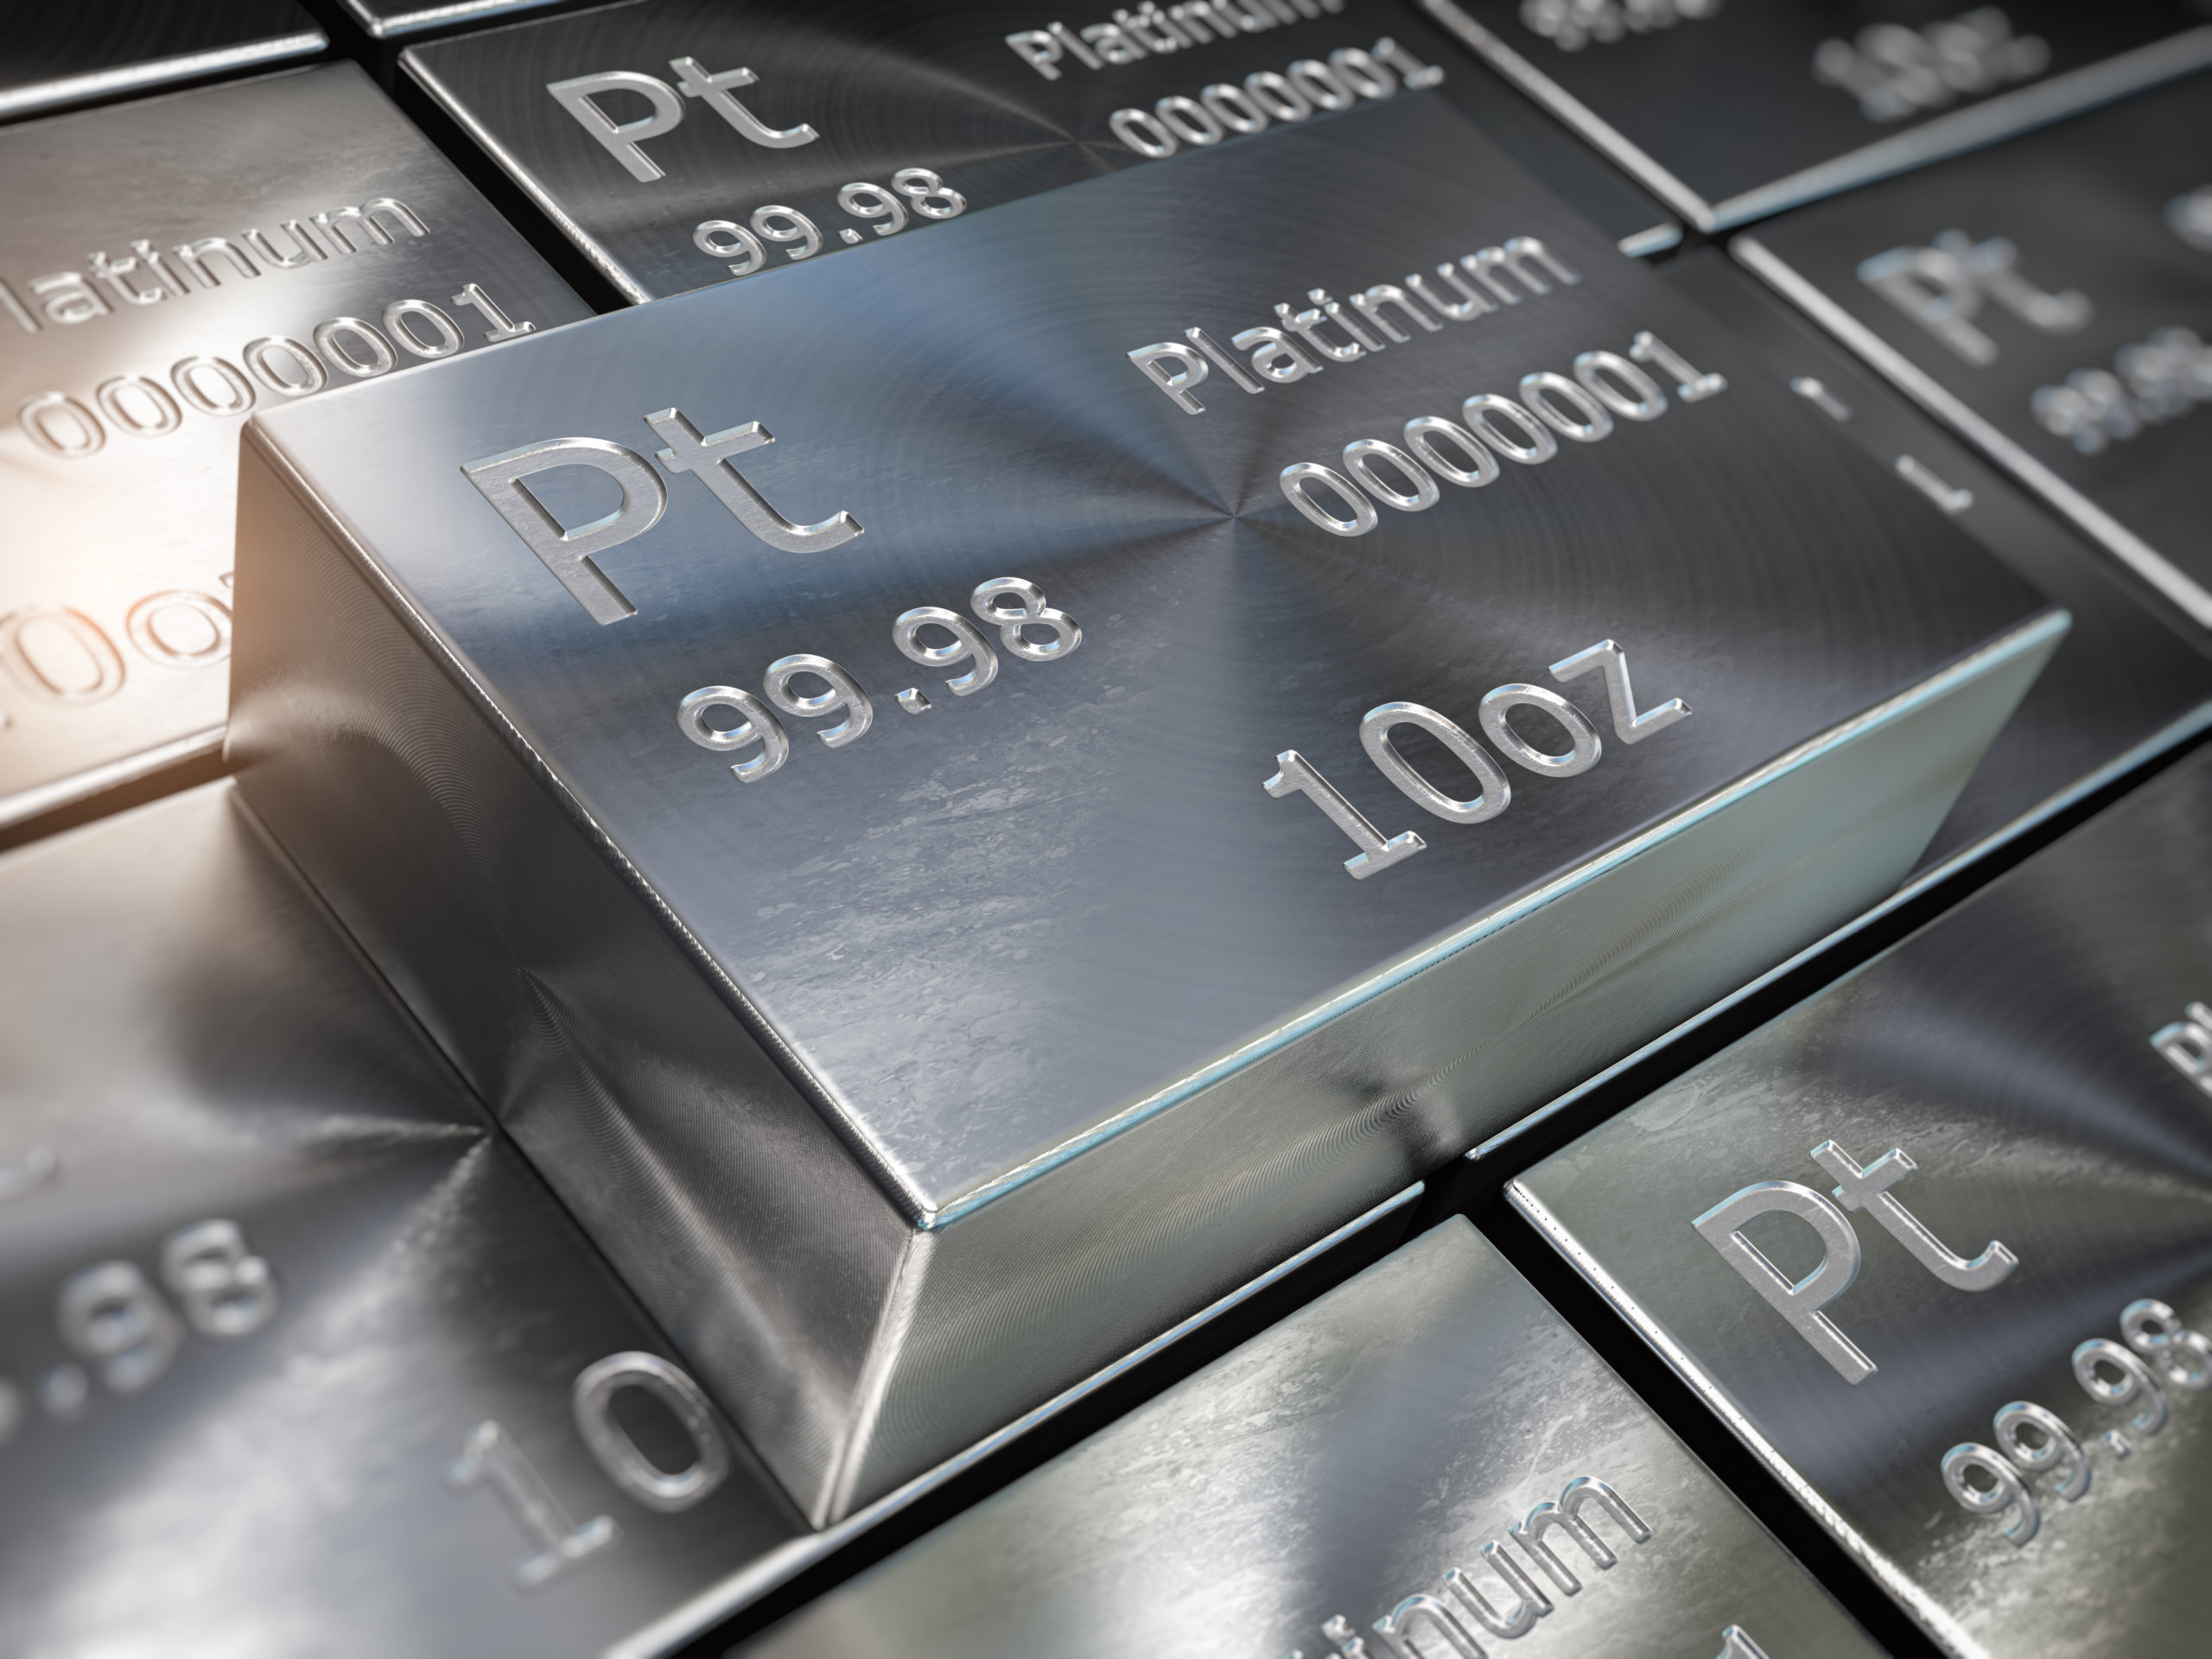 Platinum is a silvery-white metal that's the rarest of all the popular precious metals. Like gold, silver, and palladium, platinum has a wide range of uses.